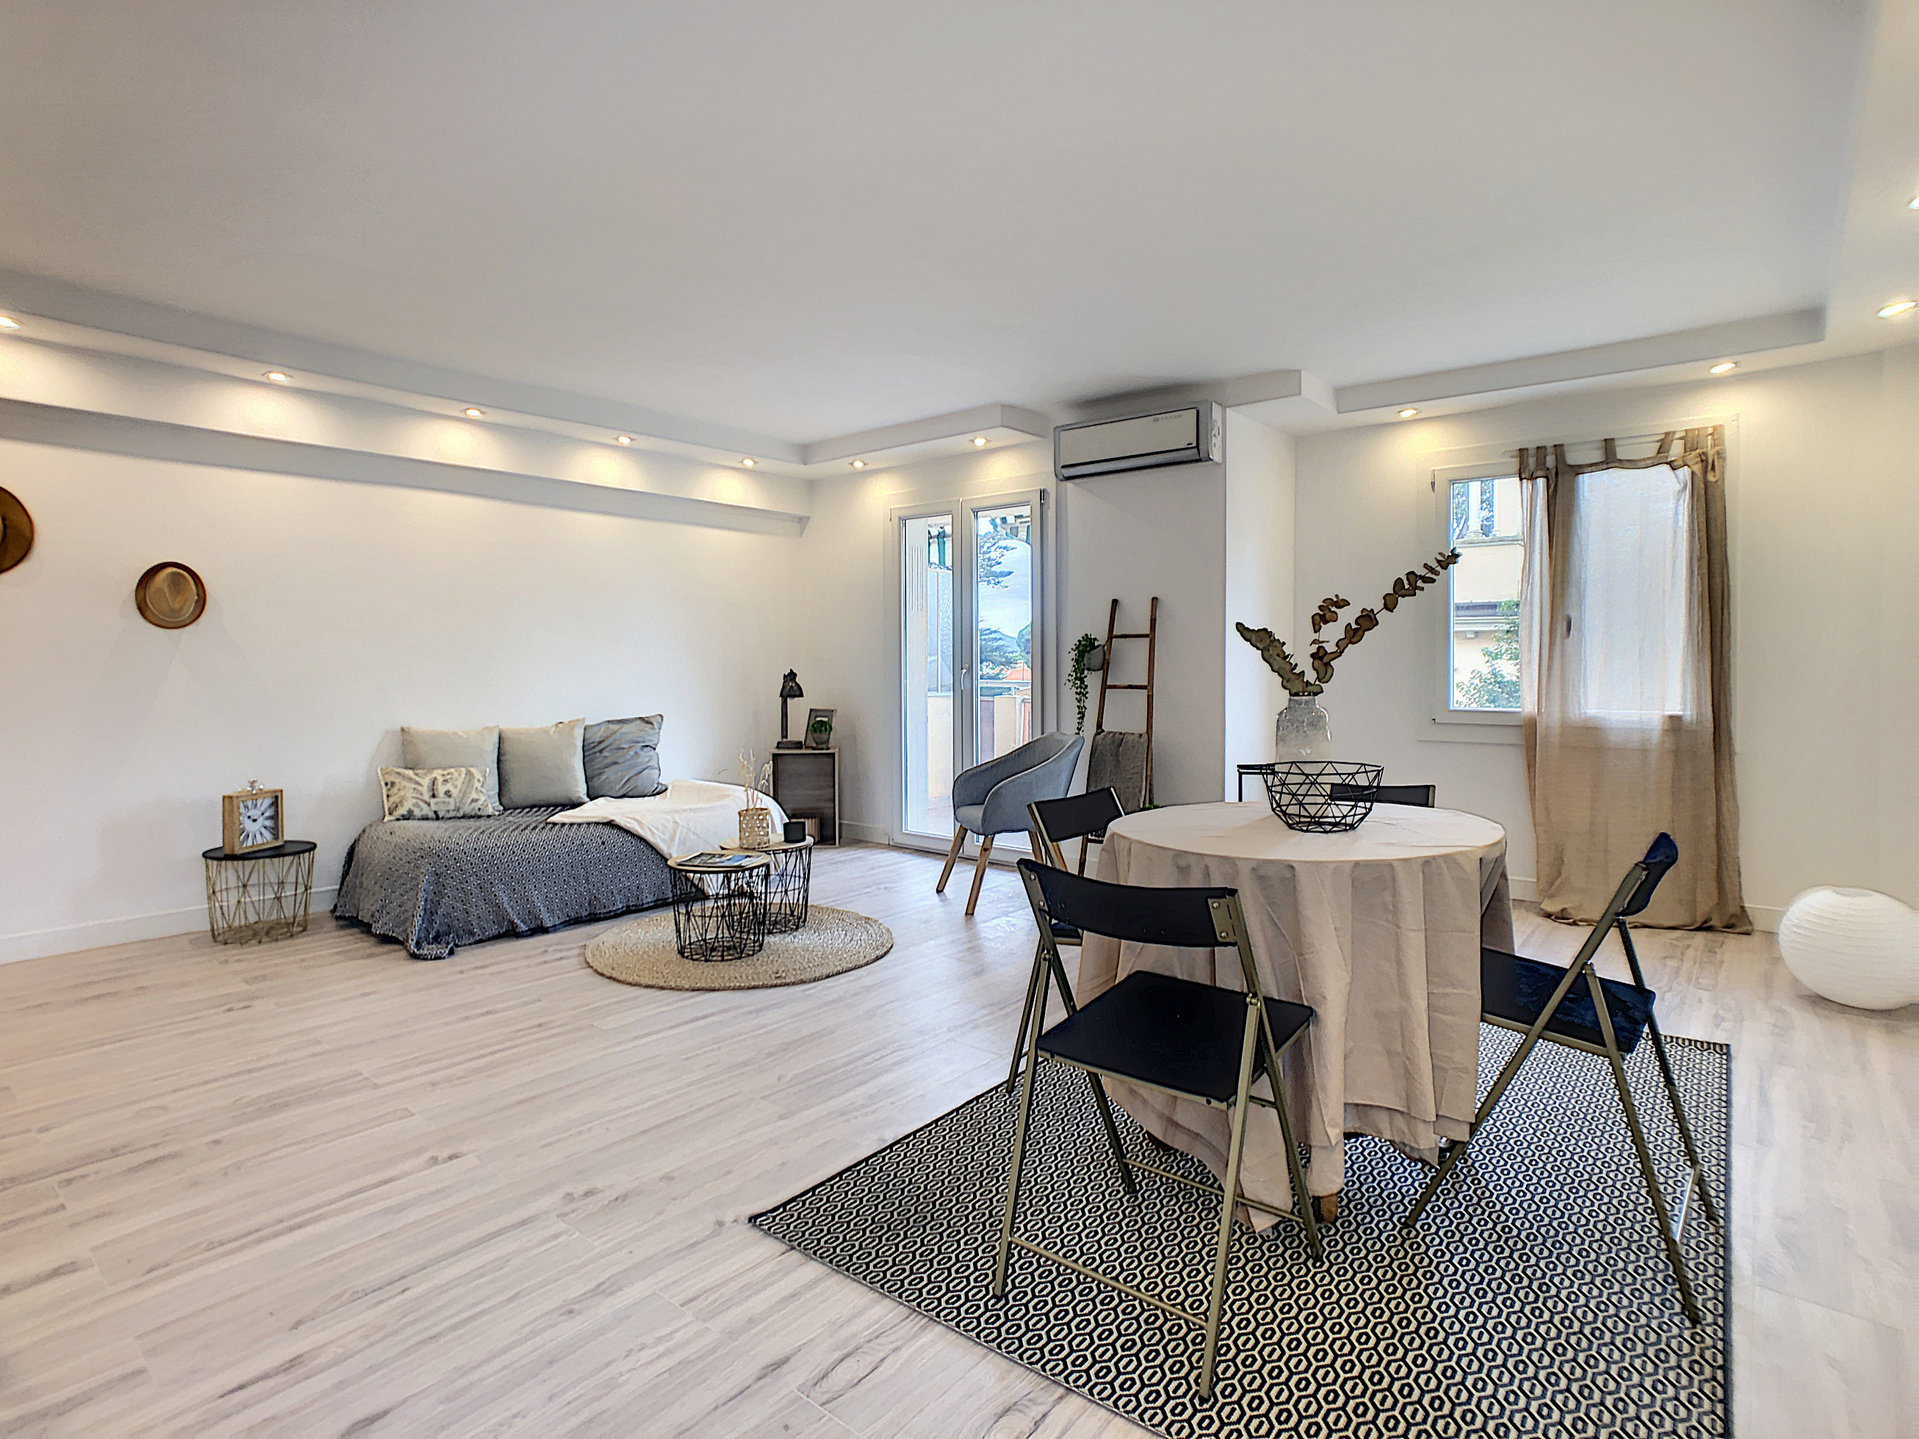 Cannes Alexandre III, Wonderfull 2 bedrooms appartment renovated